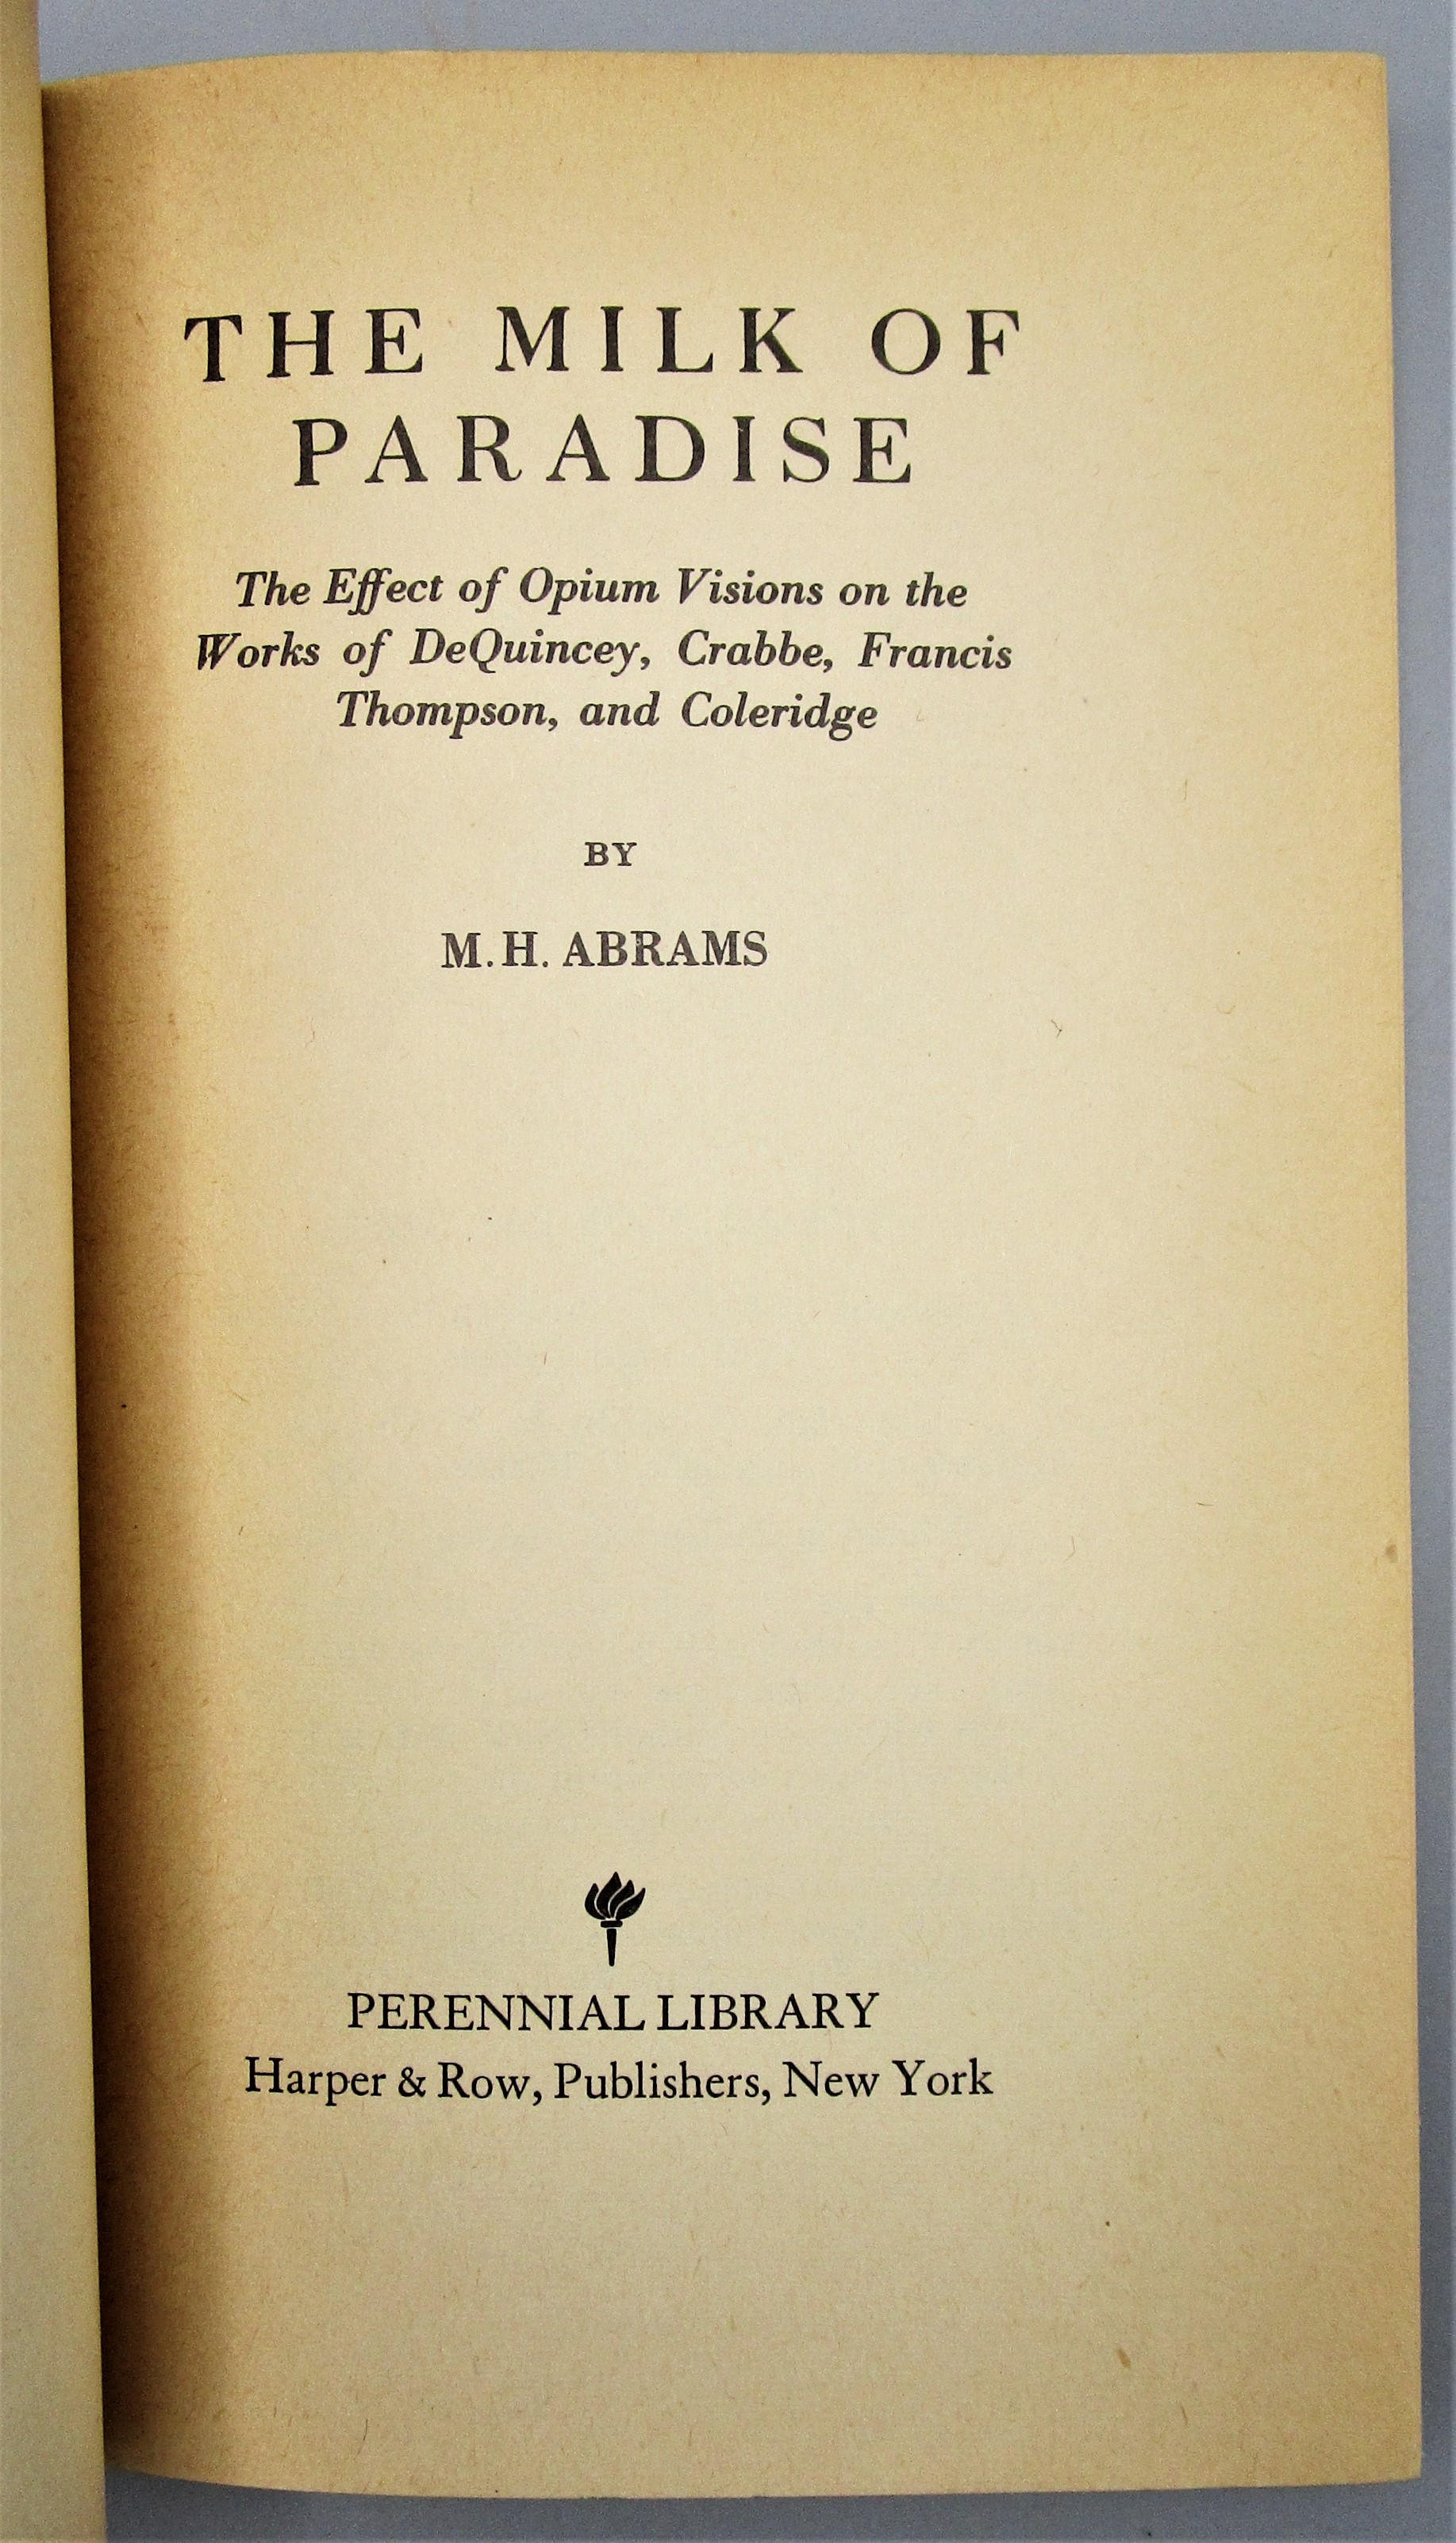 THE MILK OF PARADISE, by M.H. Abrams - 1970